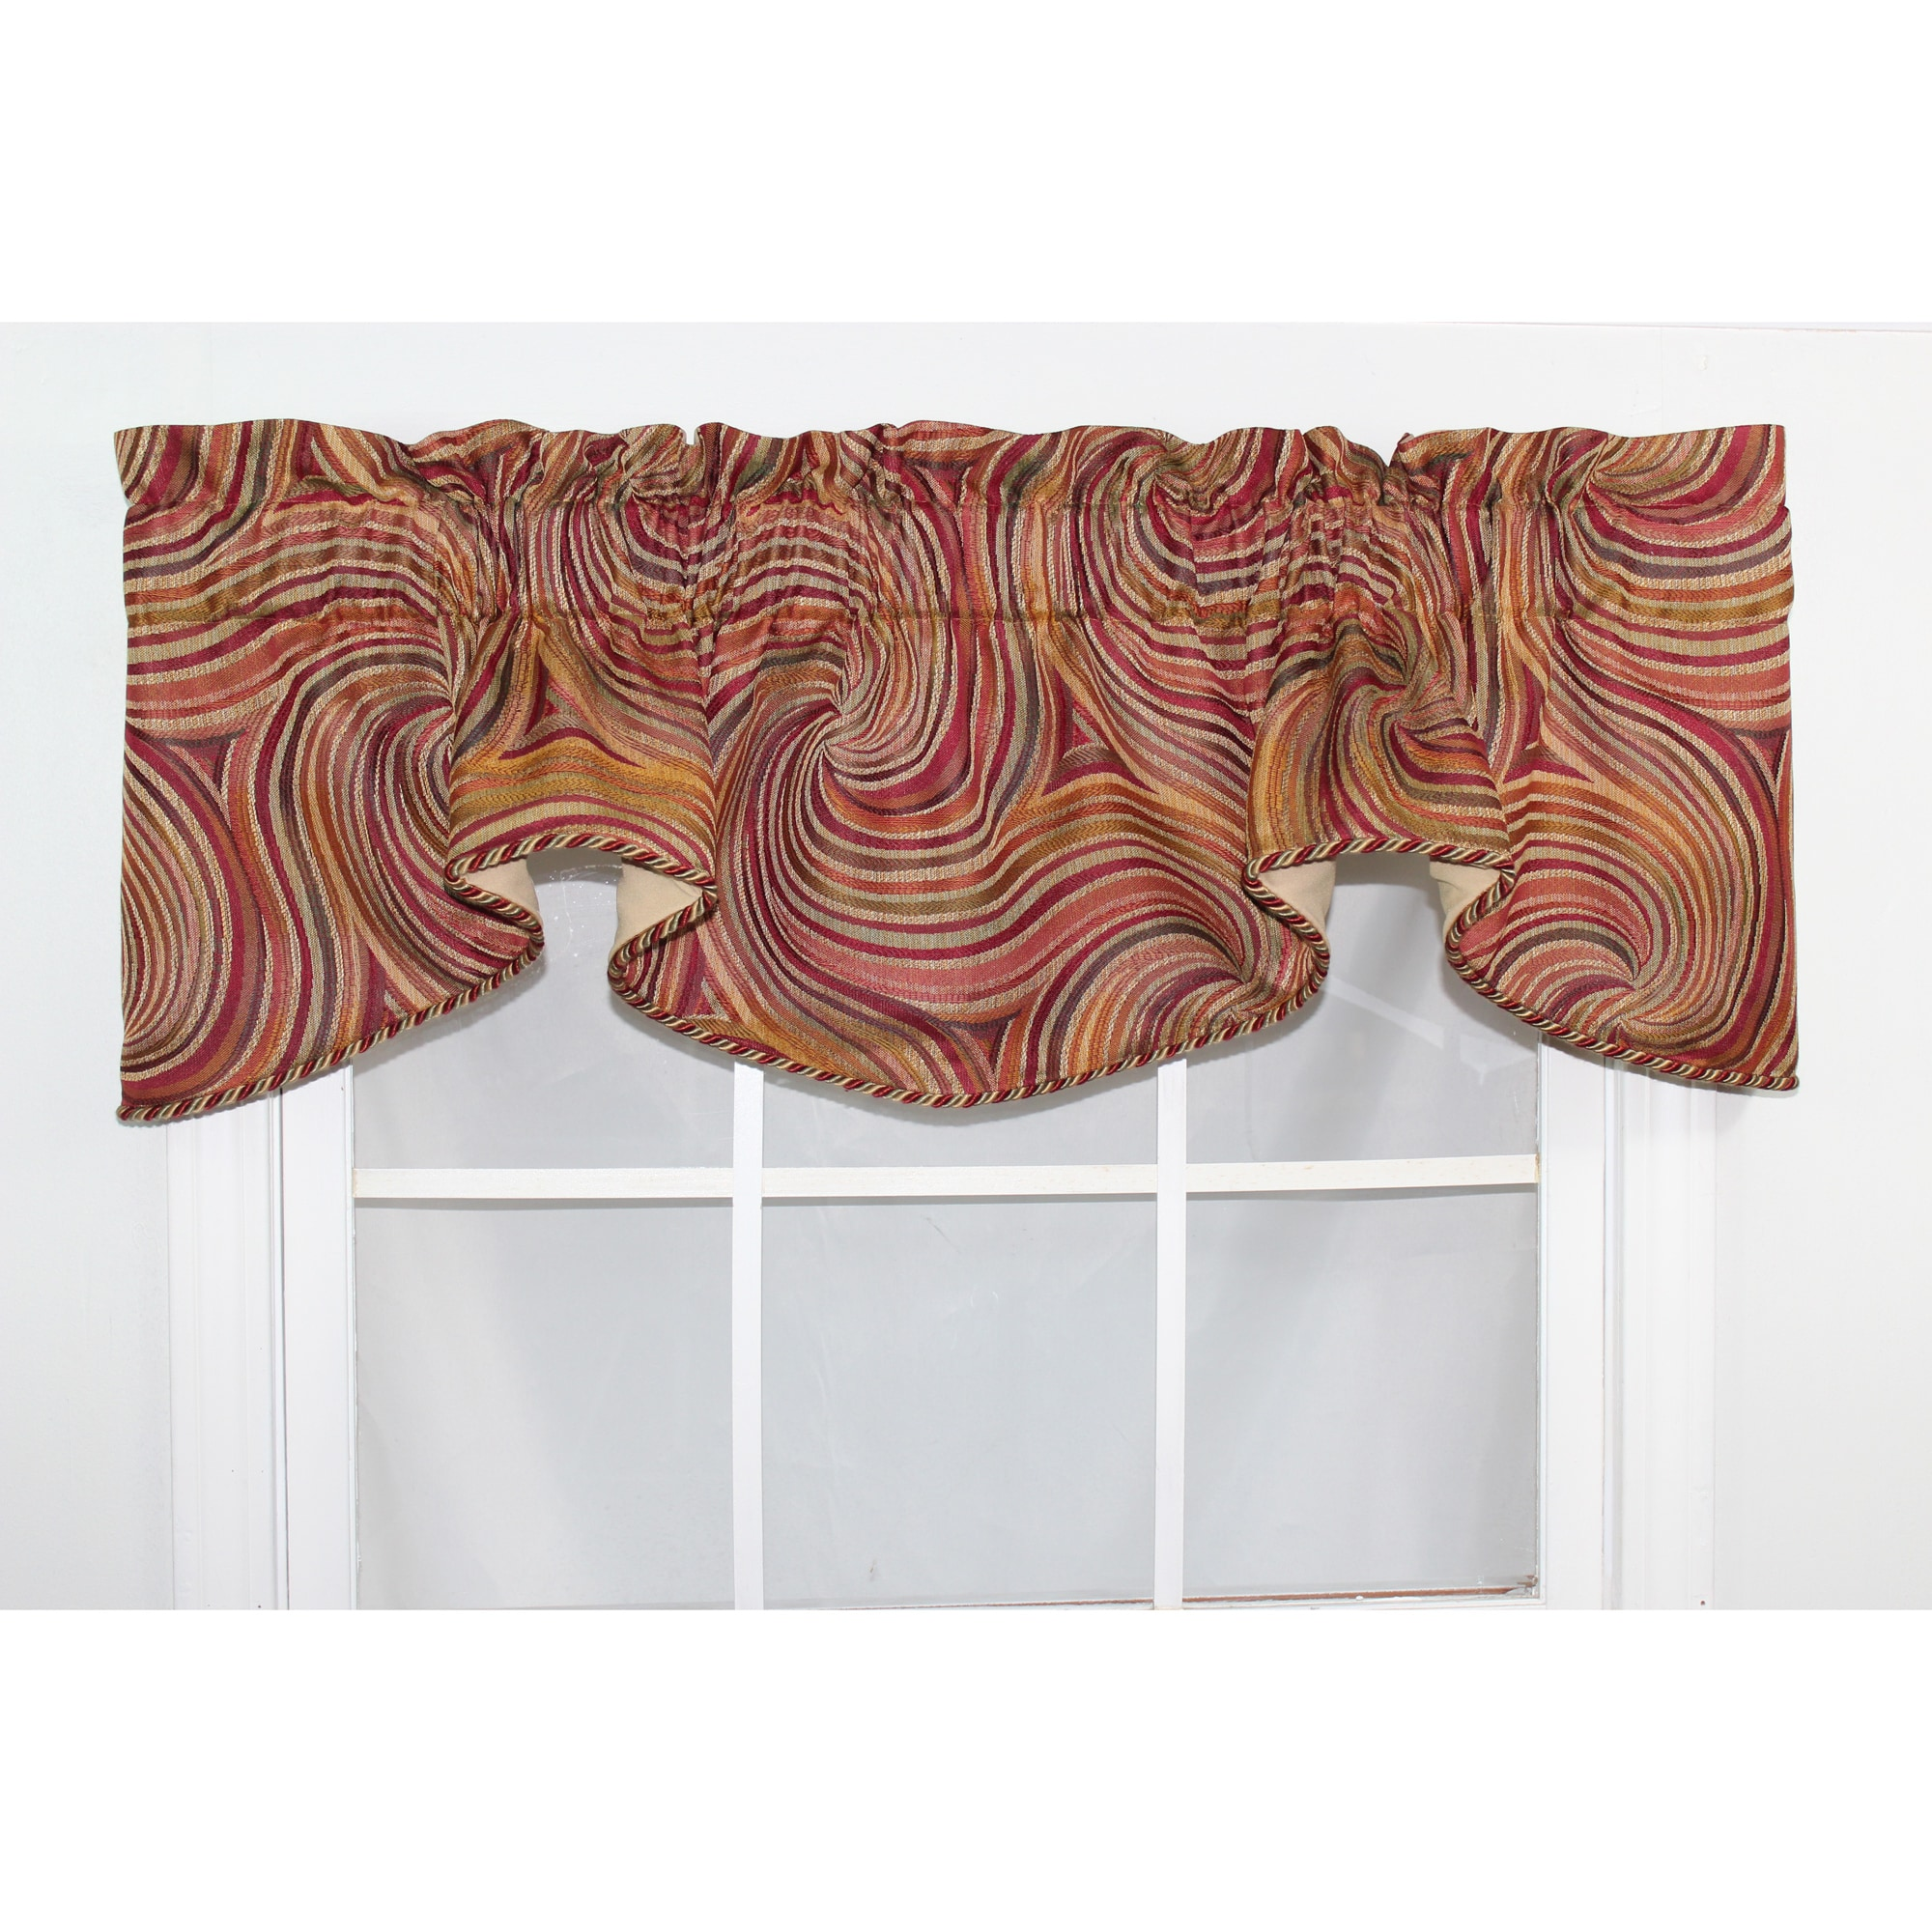 Rlf Home Altesa Contemporary Window Valance at Sears.com